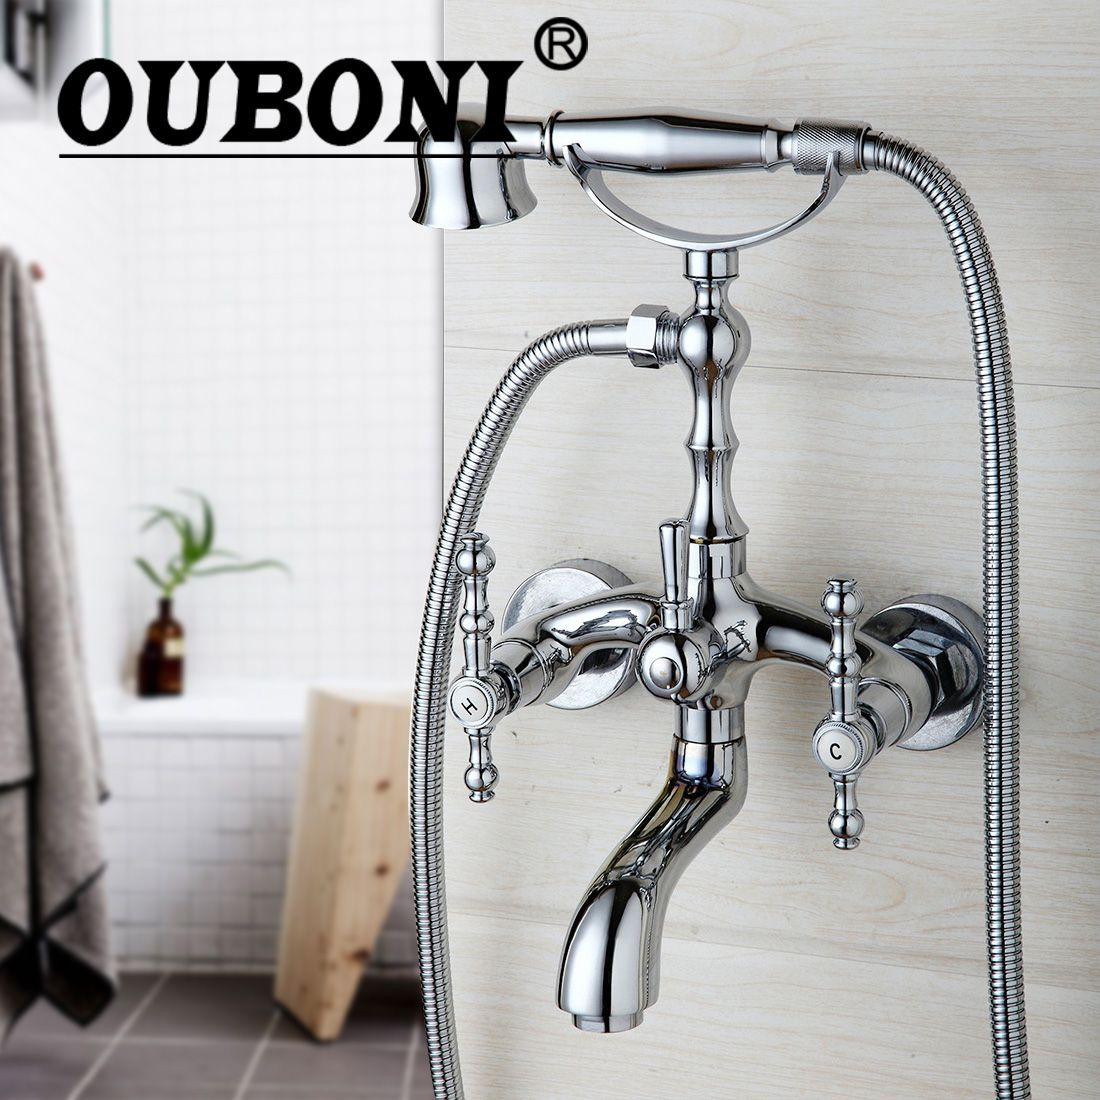 OUBONI Shower Set Chrome Telephone Install Bathroom Sink Faucet Bathtub Basin Mixer Tap With Shower Hand